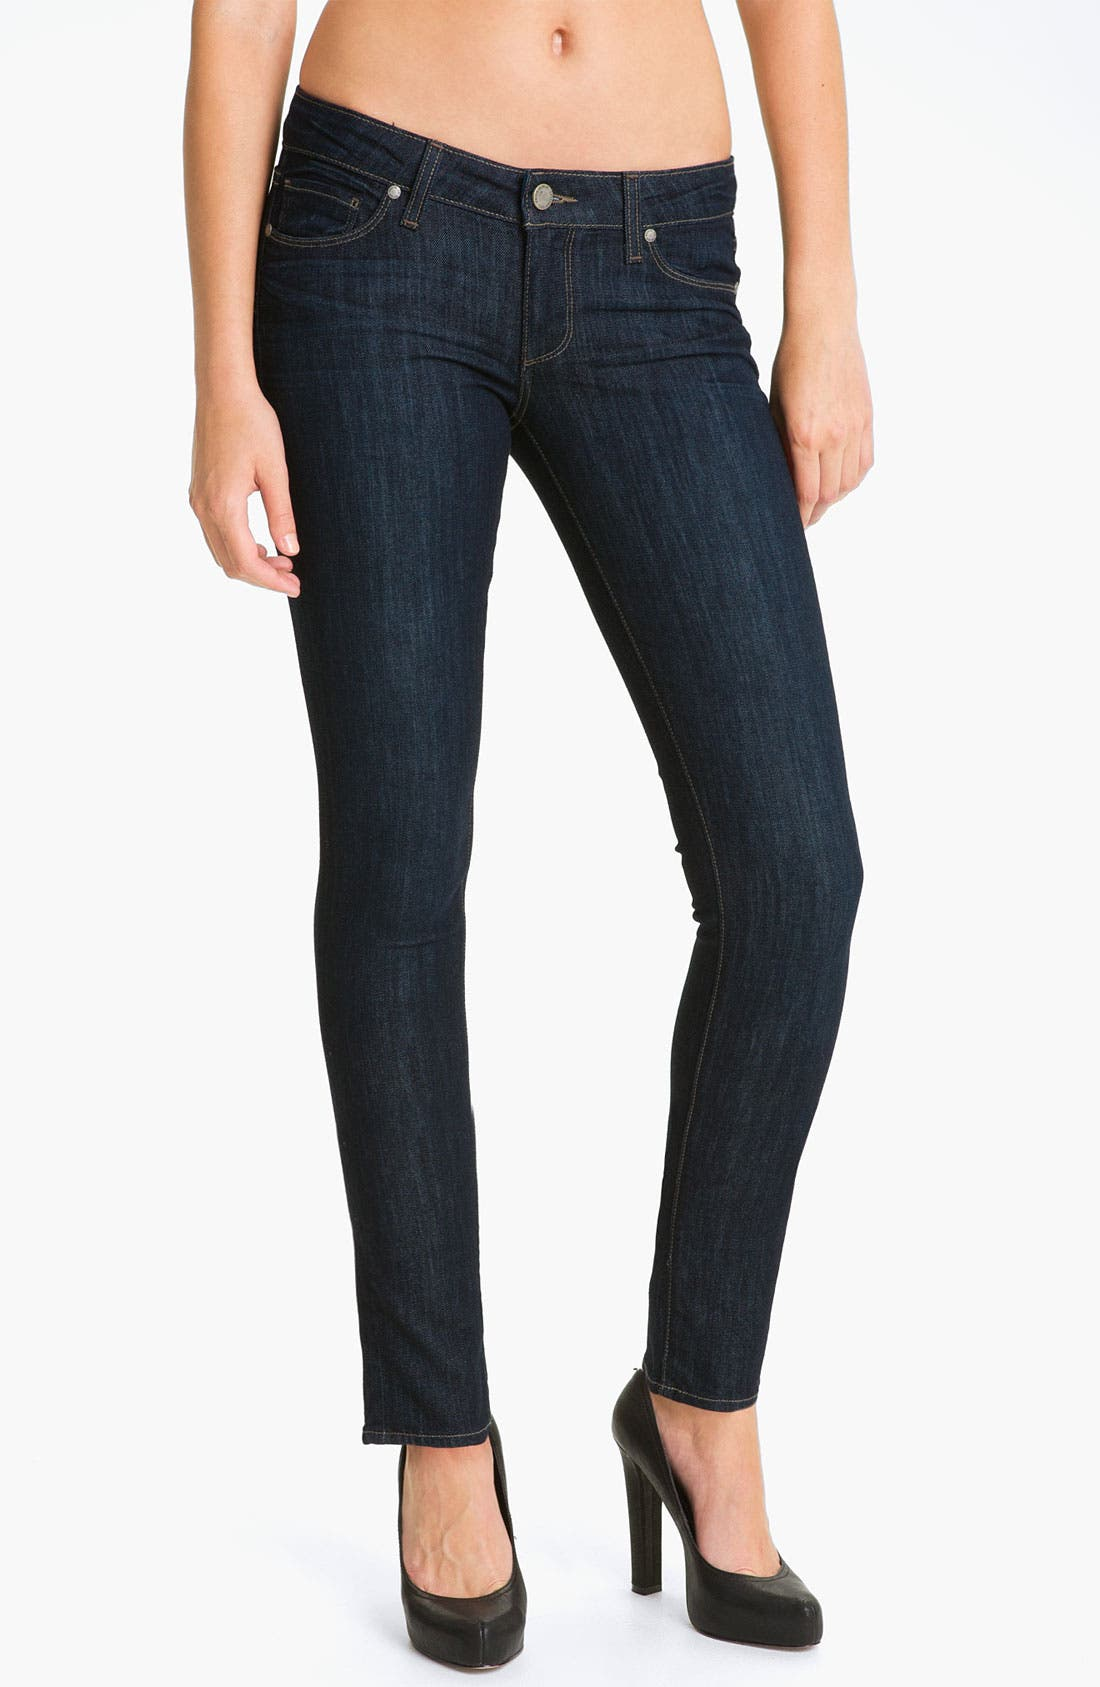 Alternate Image 1 Selected - Paige Denim 'Skyline' Ankle Peg Skinny Stretch Jeans (Dream)